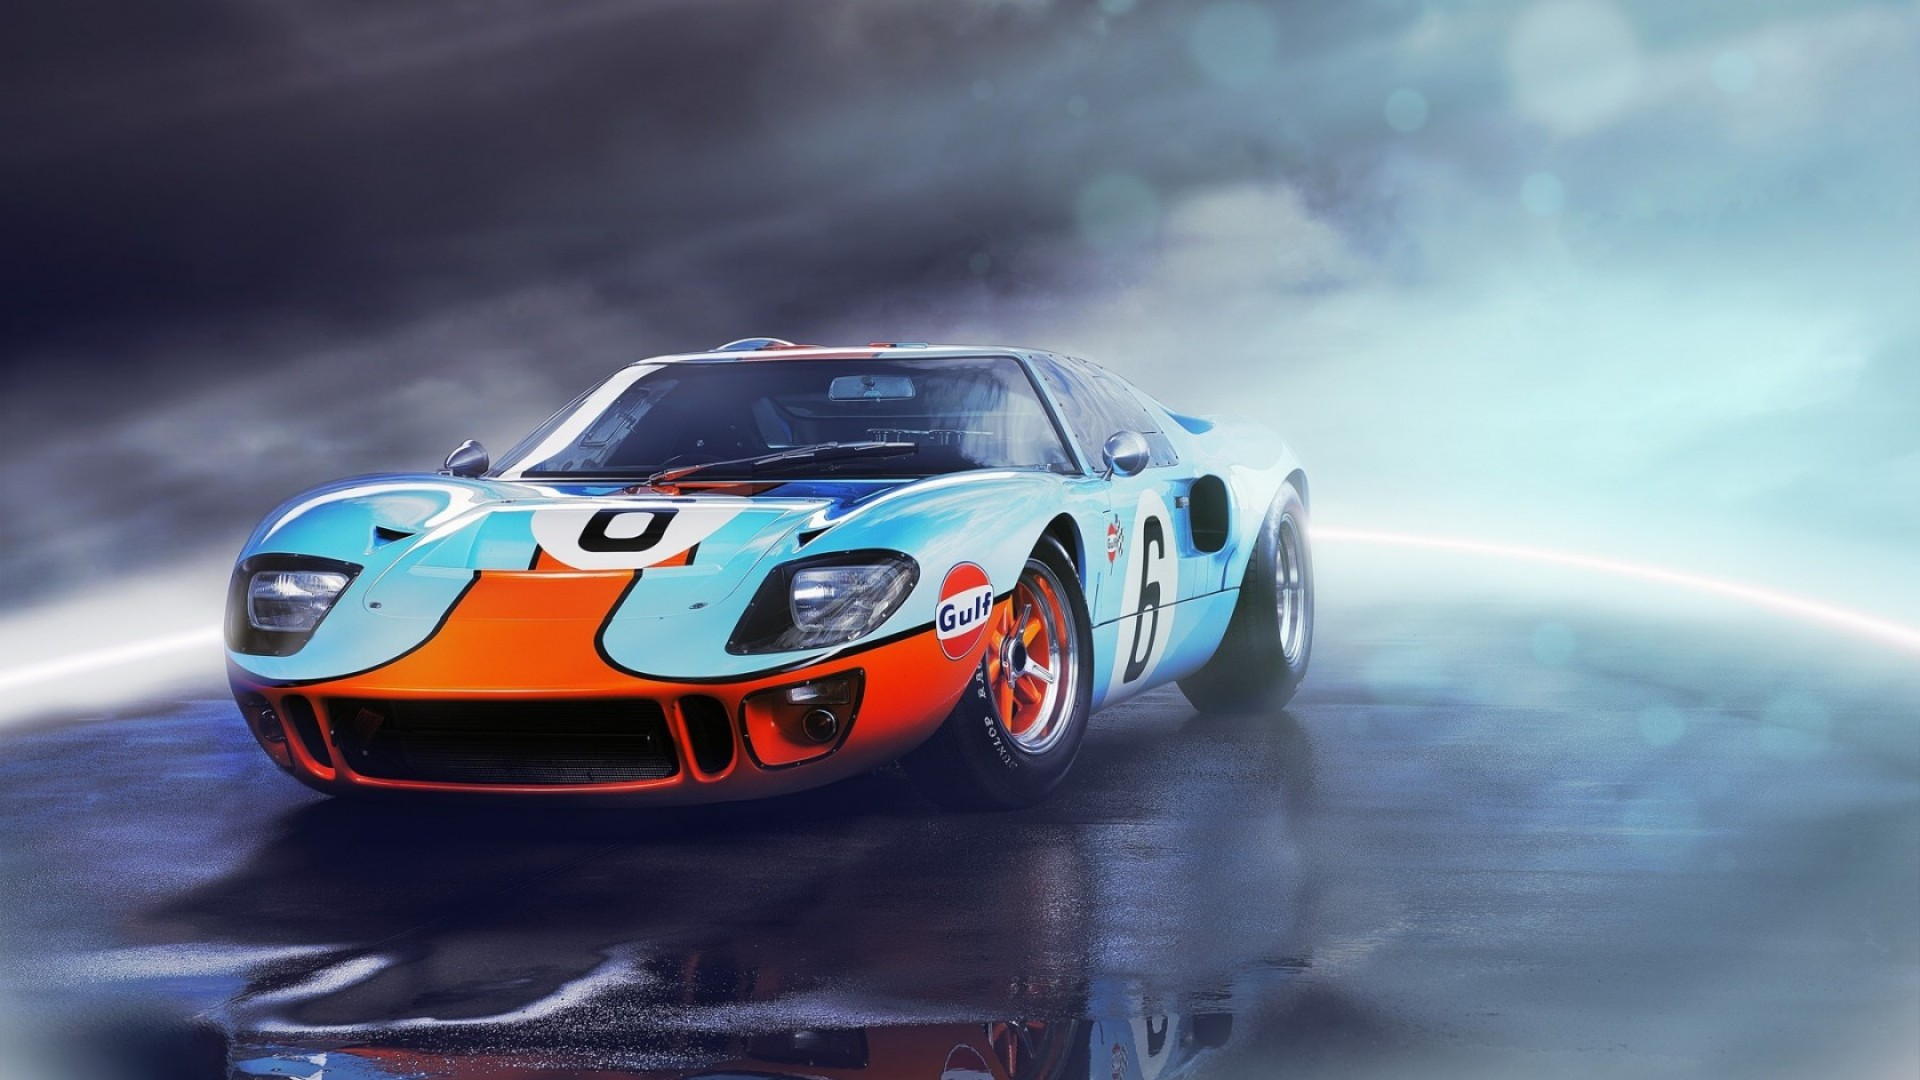 Ford Gt Wallpaper Posted By Ethan Cunningham